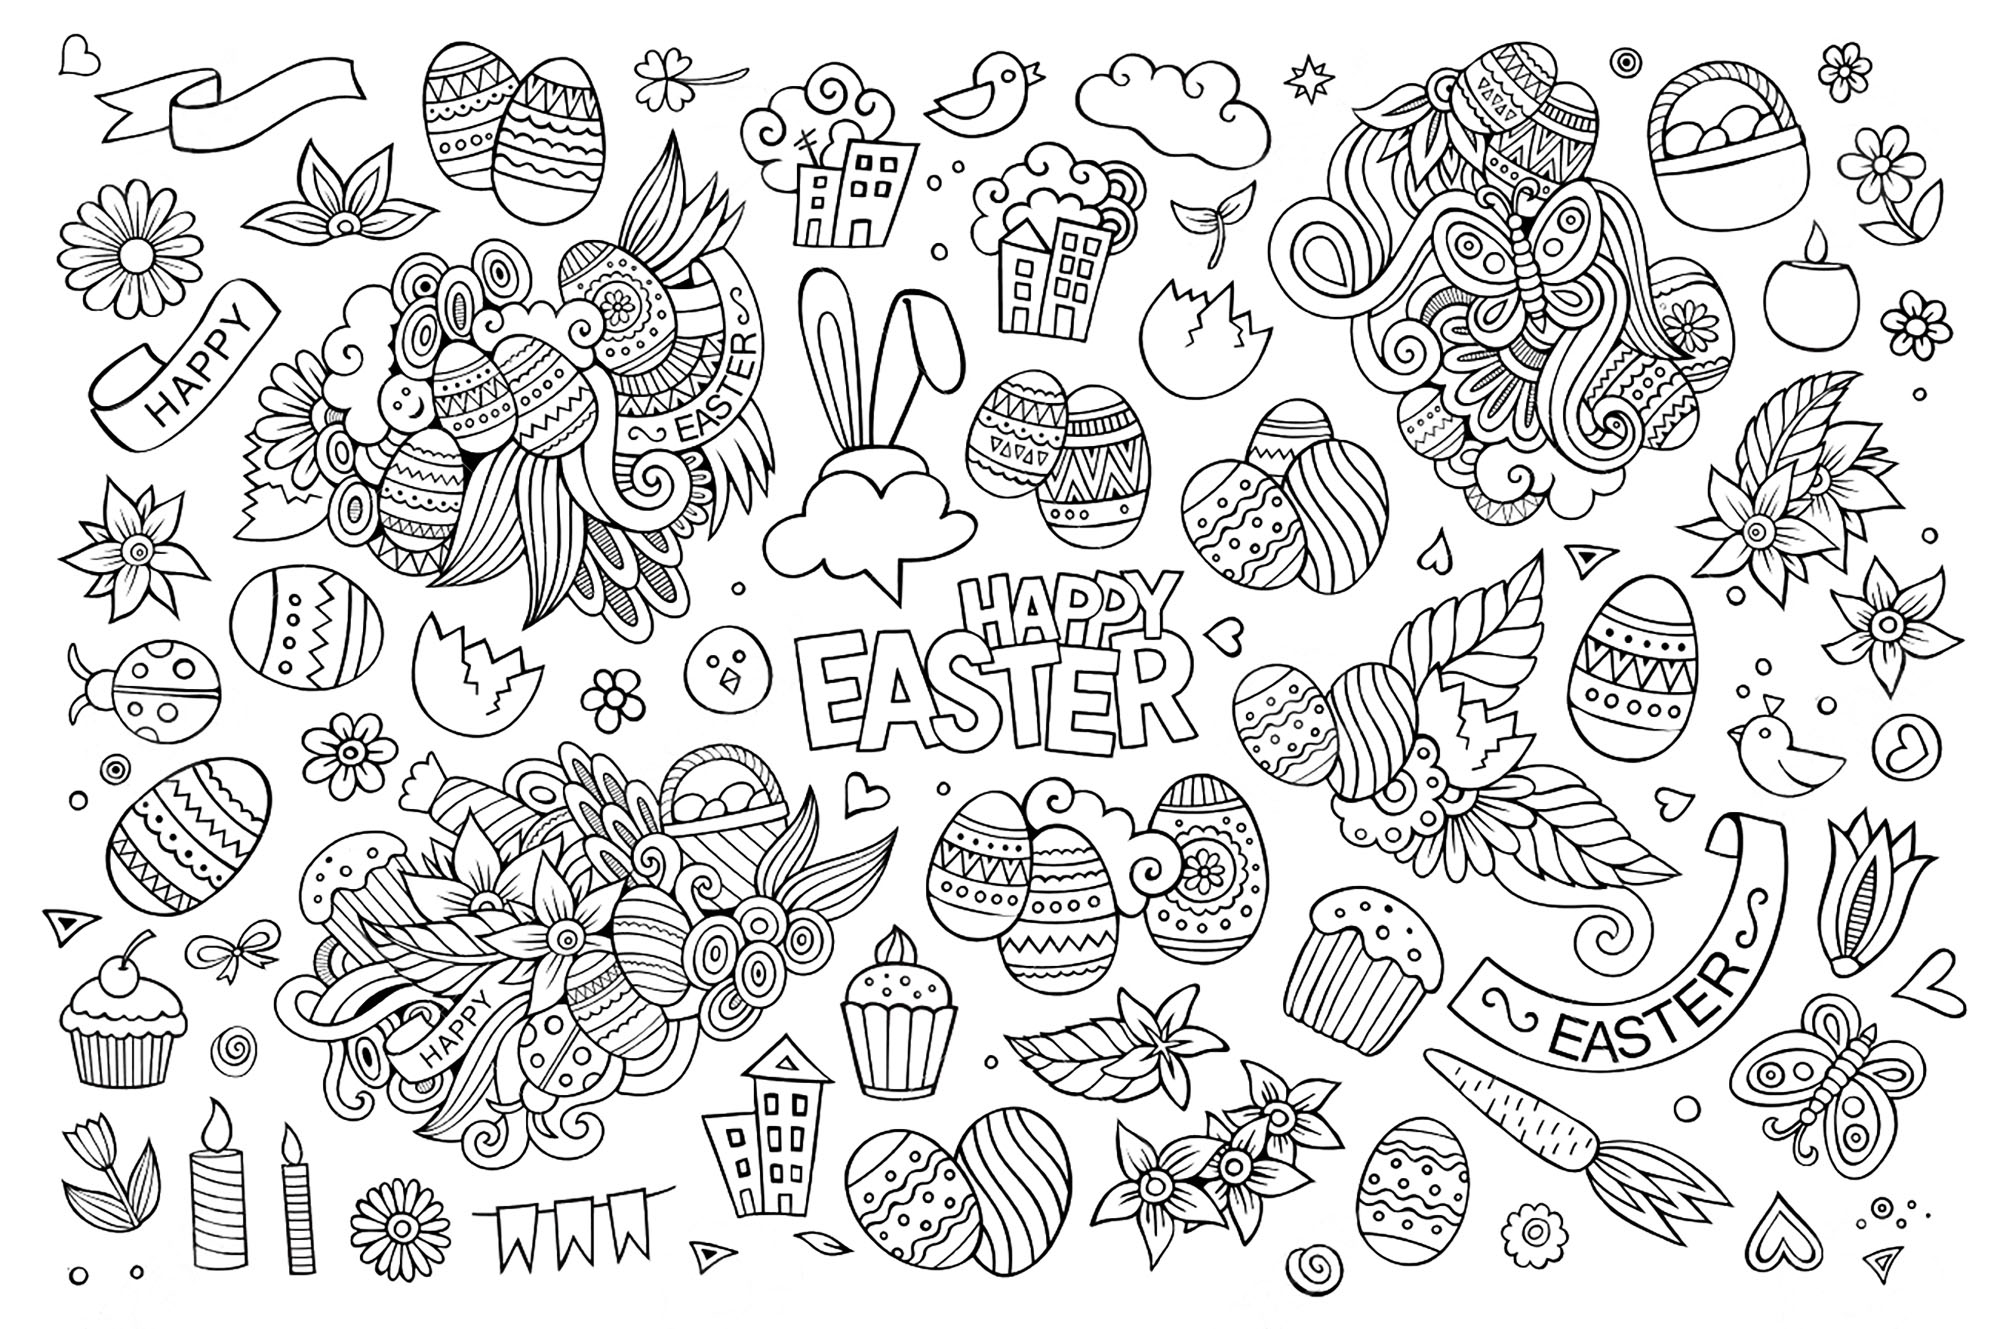 easter coloring pages for adults - easter adult coloring pages image=events easter coloring adult simple easter doodle by olga kostenko 1